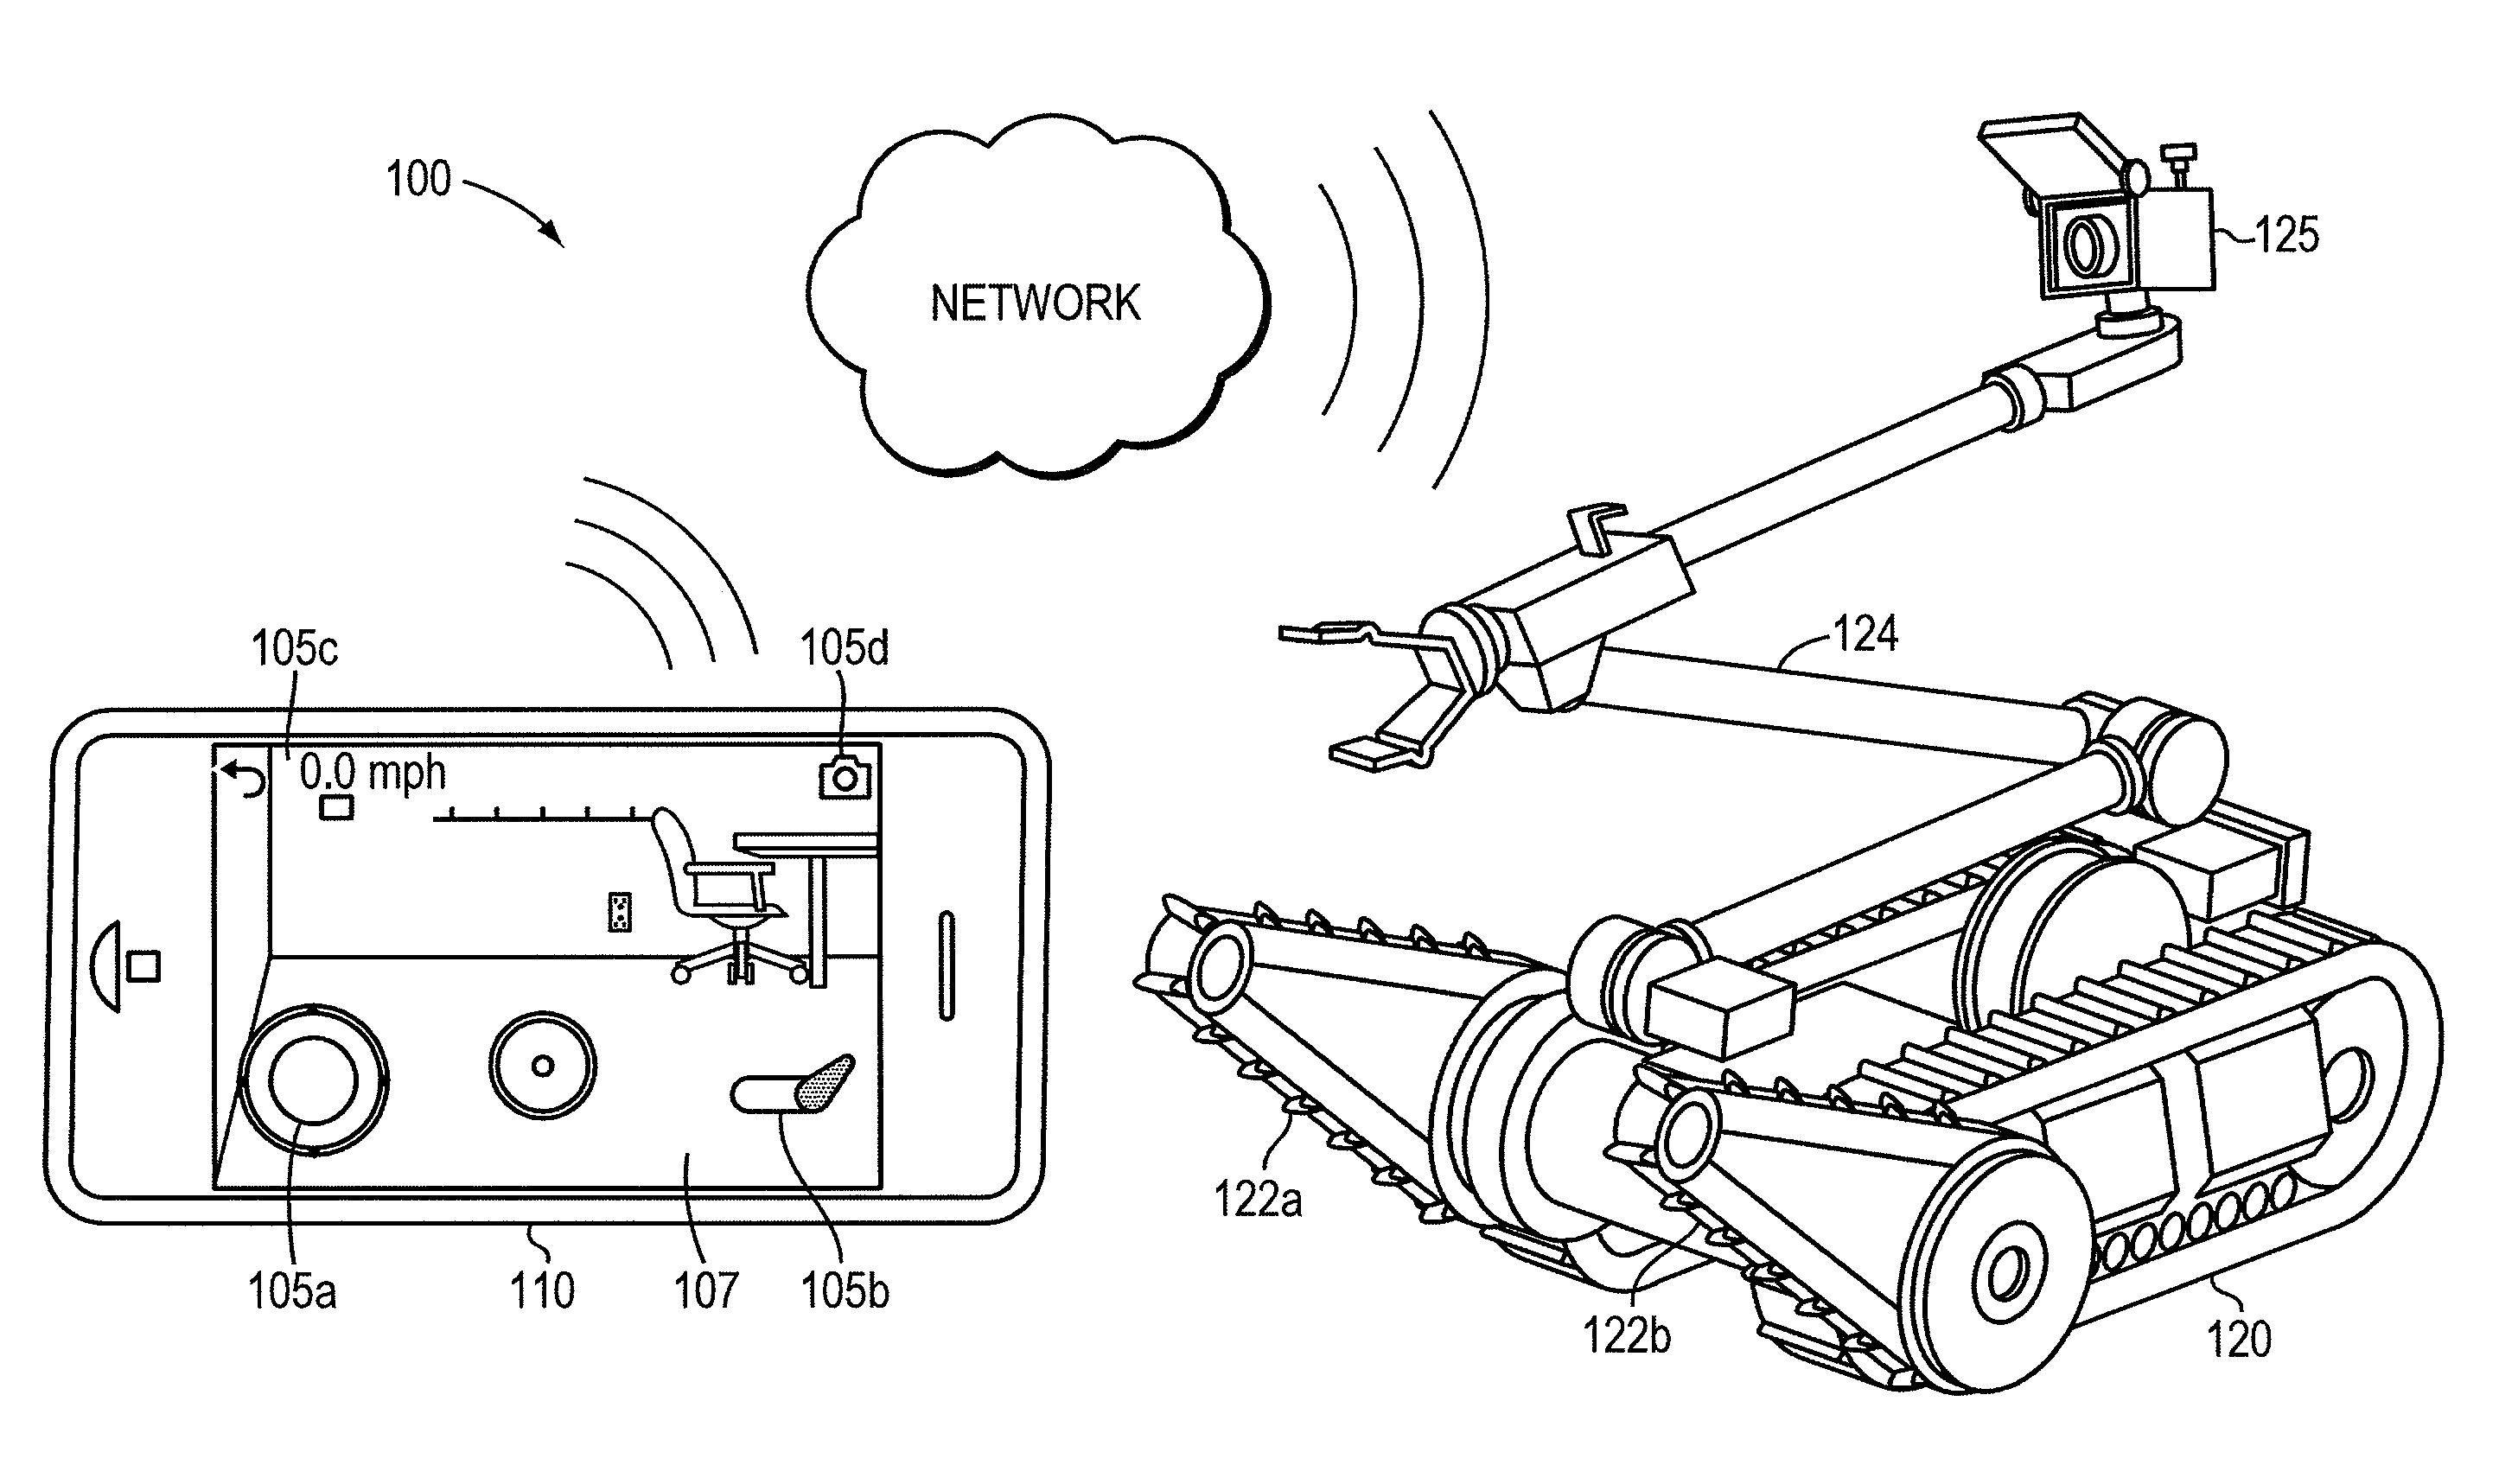 patent us20120191269 - teleoperation of unmanned ground vehicle